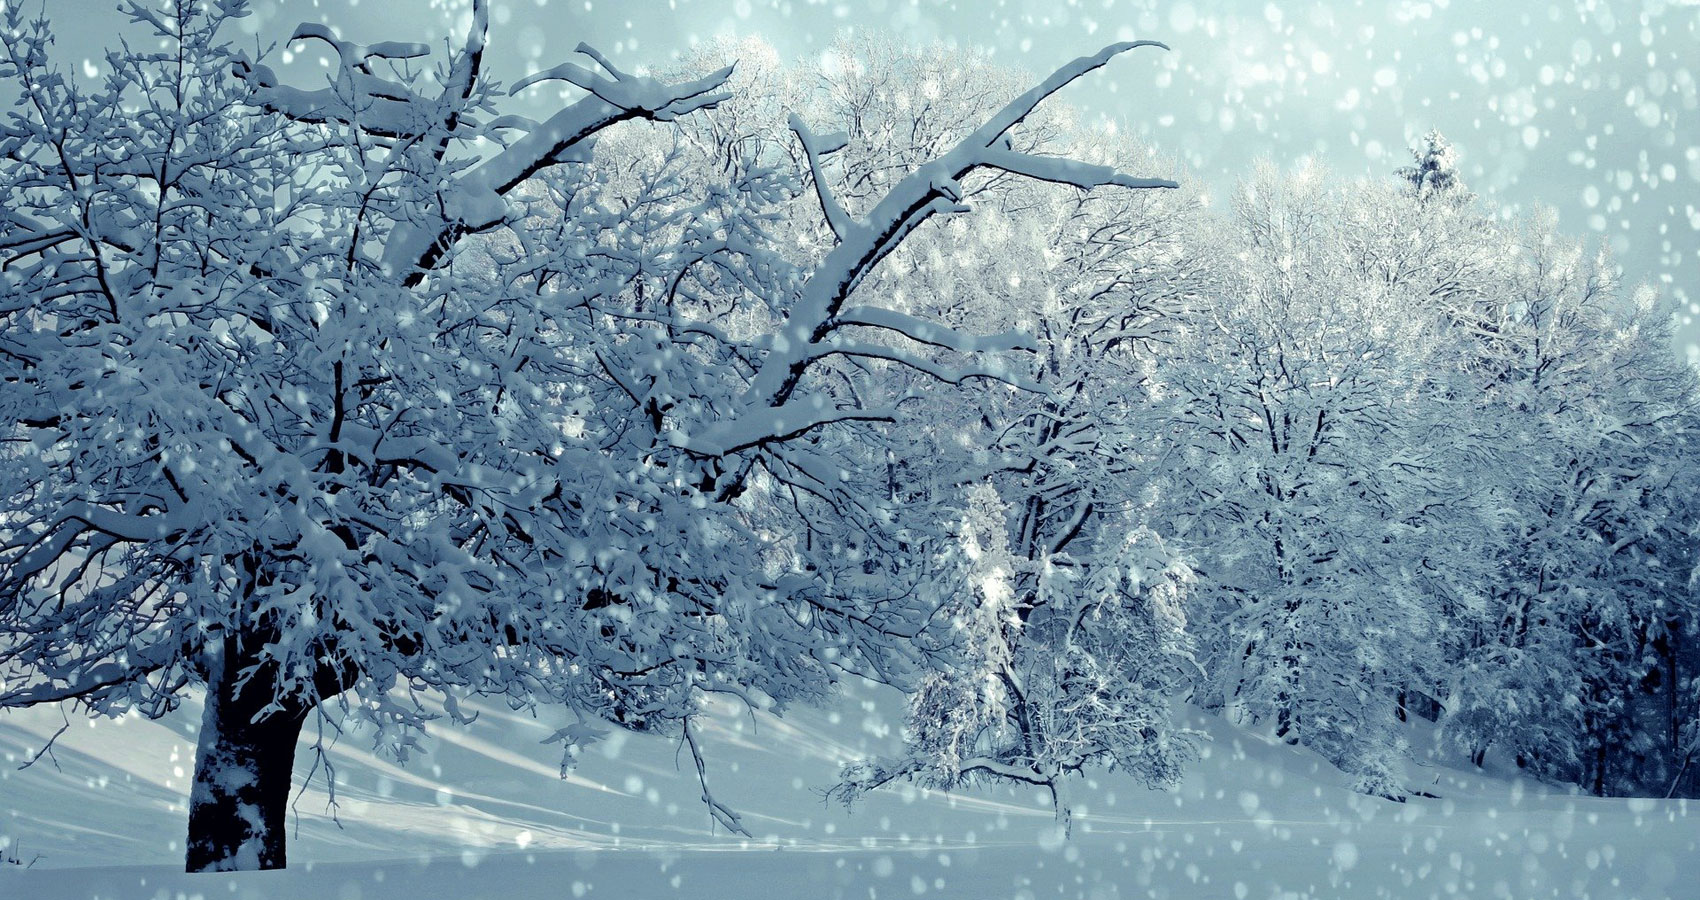 Winter Magic, poetry written by JOHN BAVERSTOCK at Spillwords.com